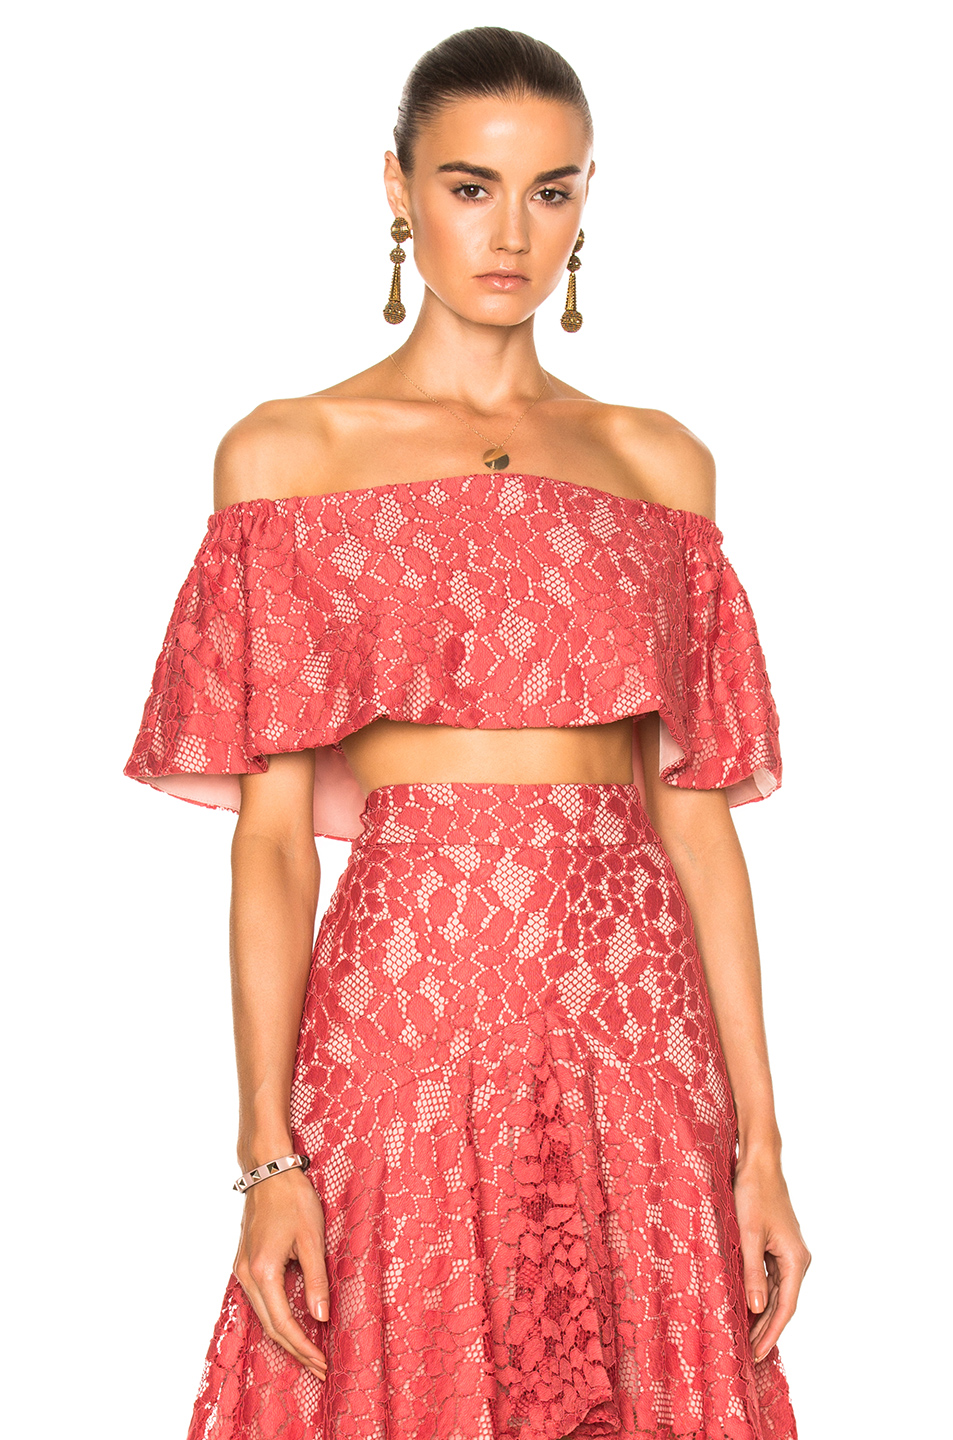 af4202d5f5f4c9 Alexis Woman Cropped Off-The-Shoulder Corded Lace Top Antique Rose In  Salmon Lace